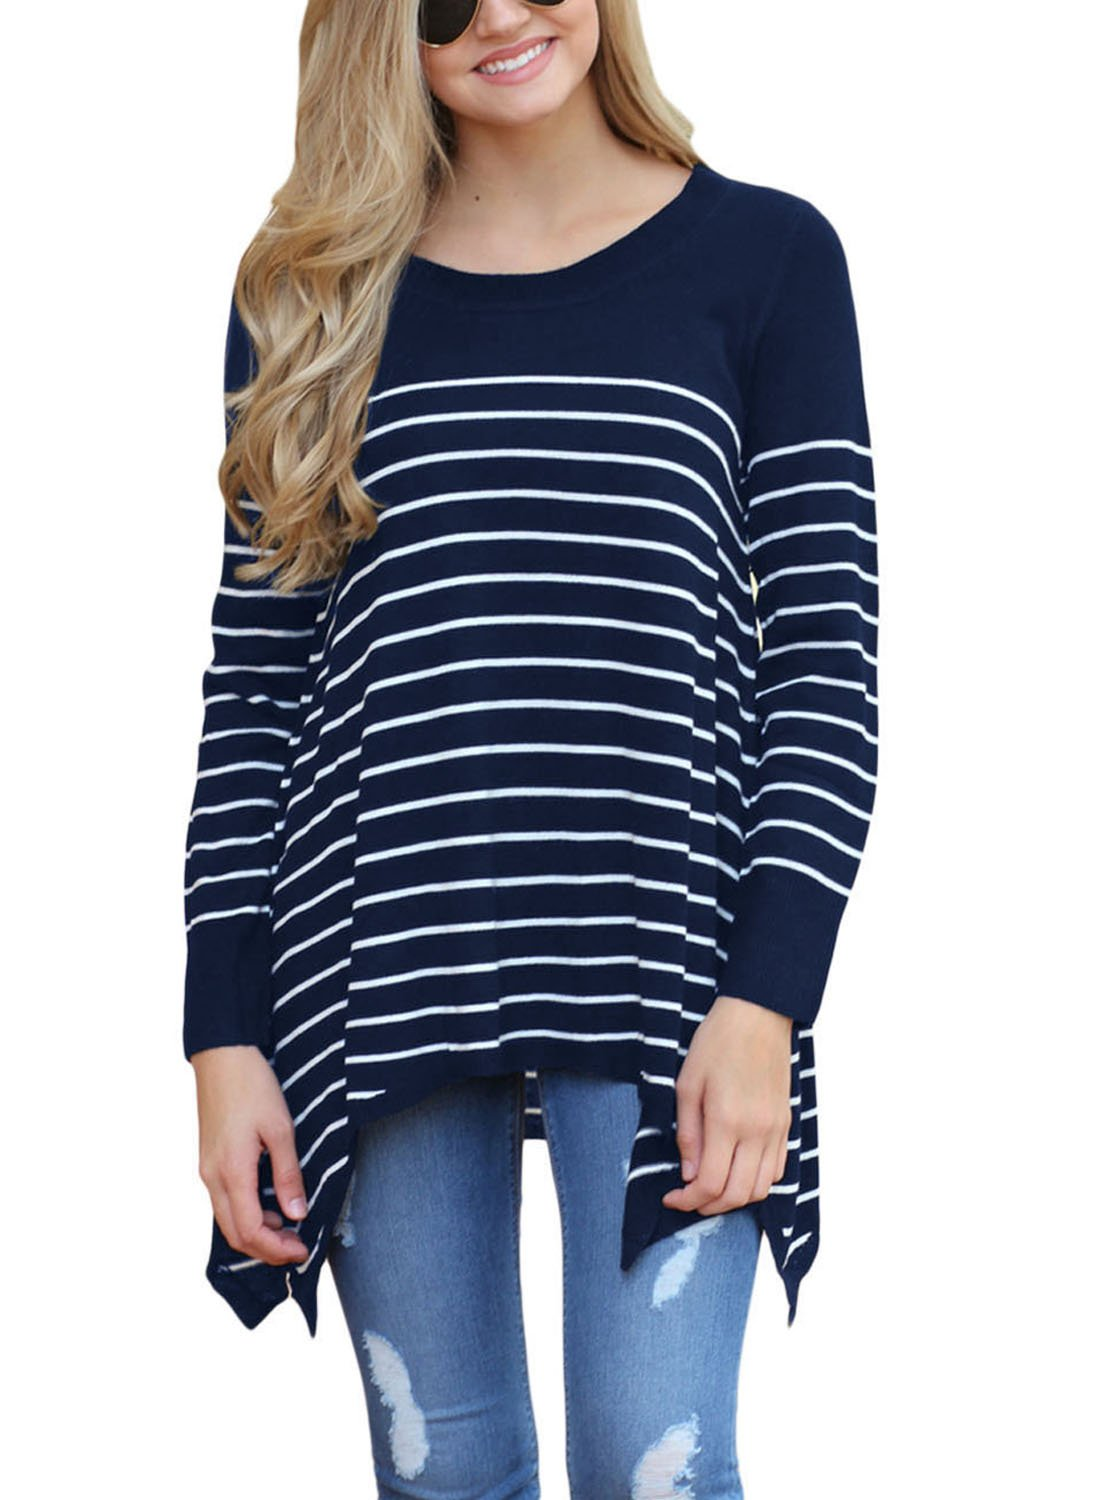 Sidefeel Women Round Neck Stripes Loose Knit Sweater Pullover Tops Medium Navy